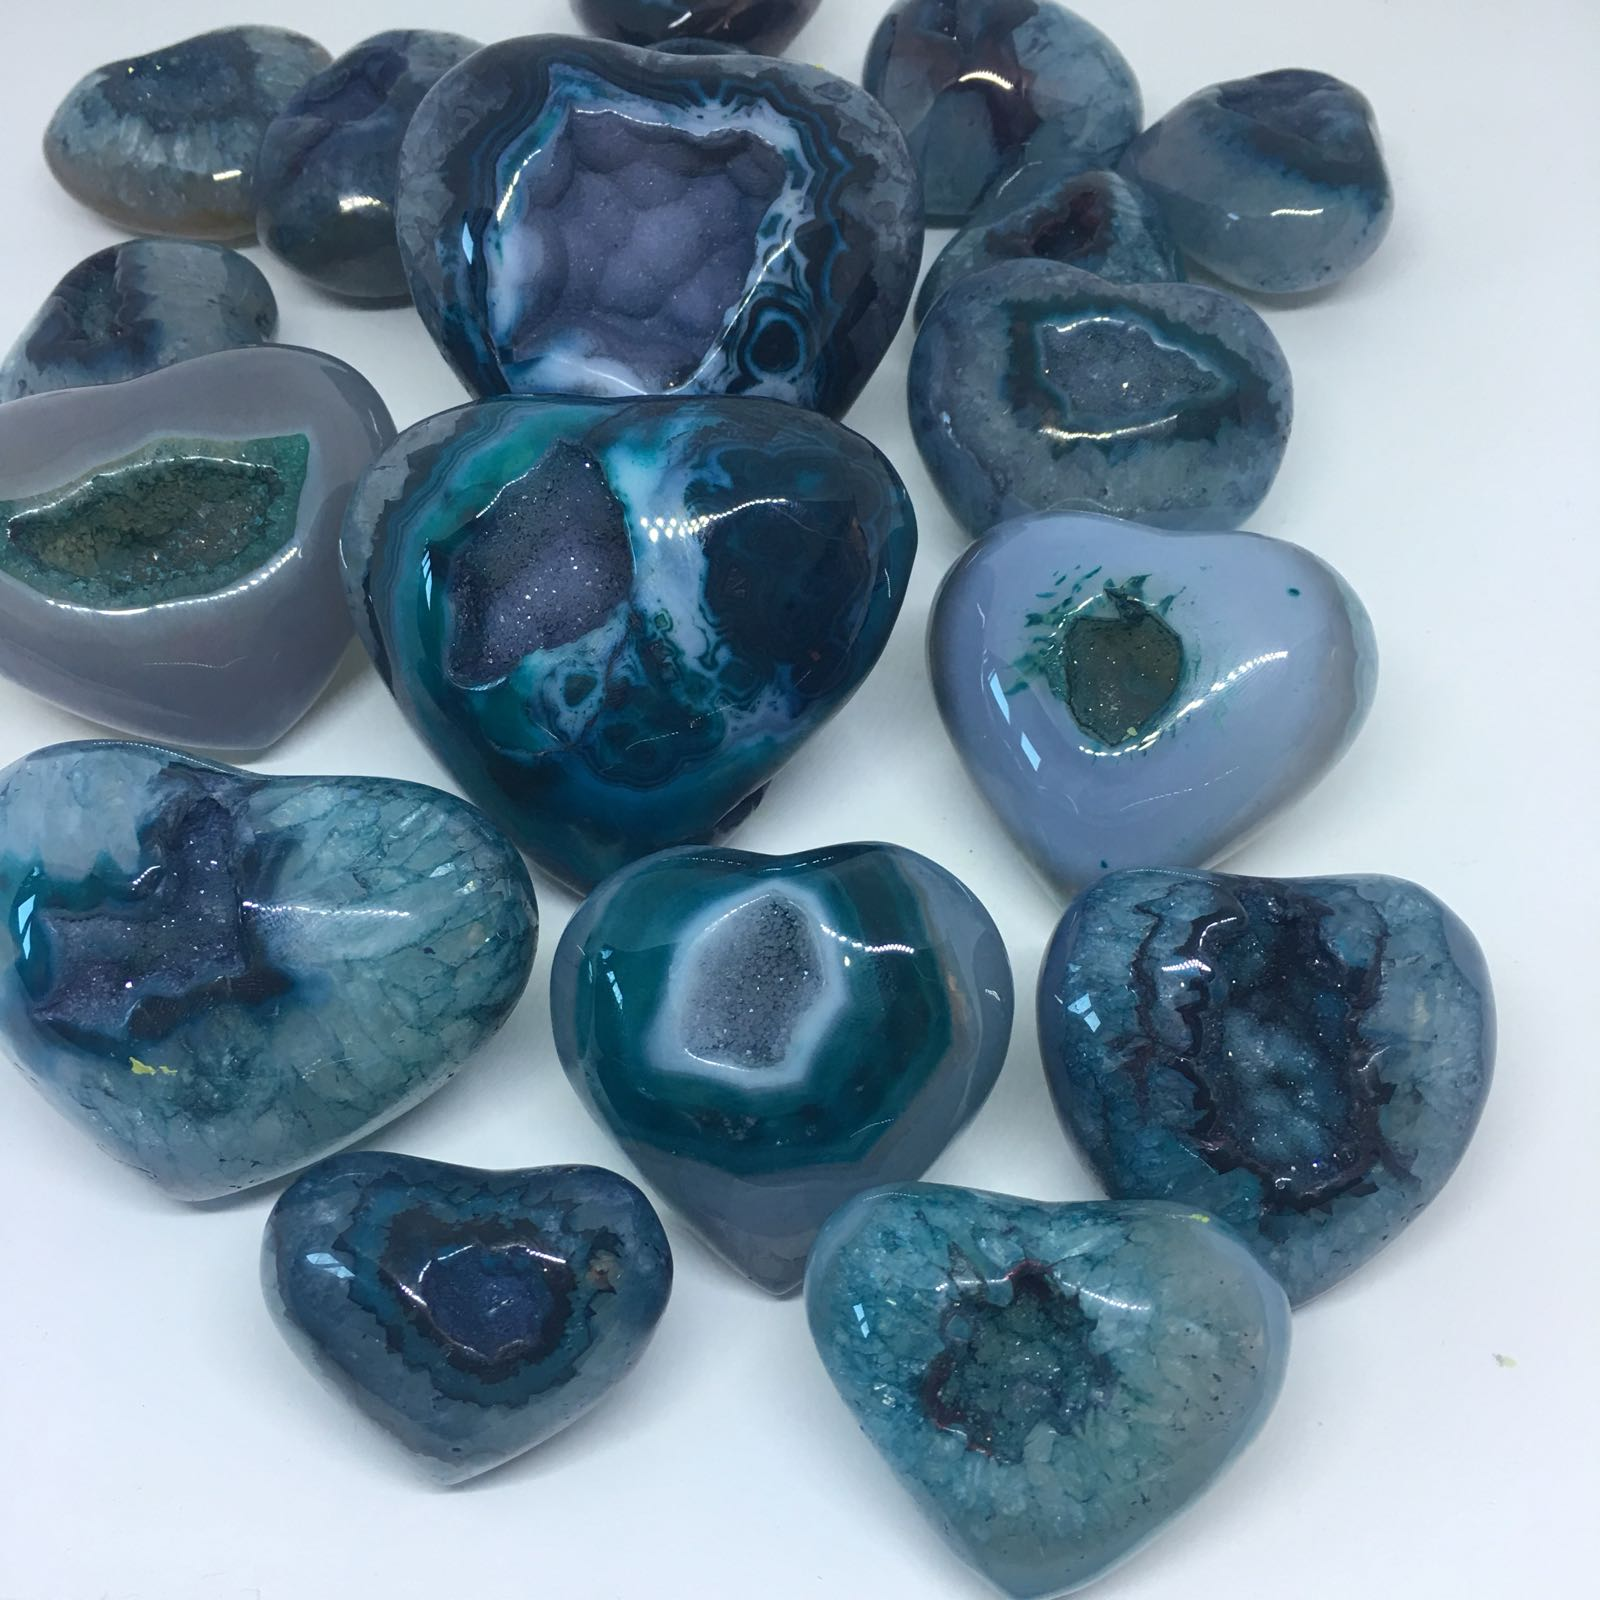 Stones from Uruguay - Teal Dyed Agate Geode Druzy Hearts for Home and Office